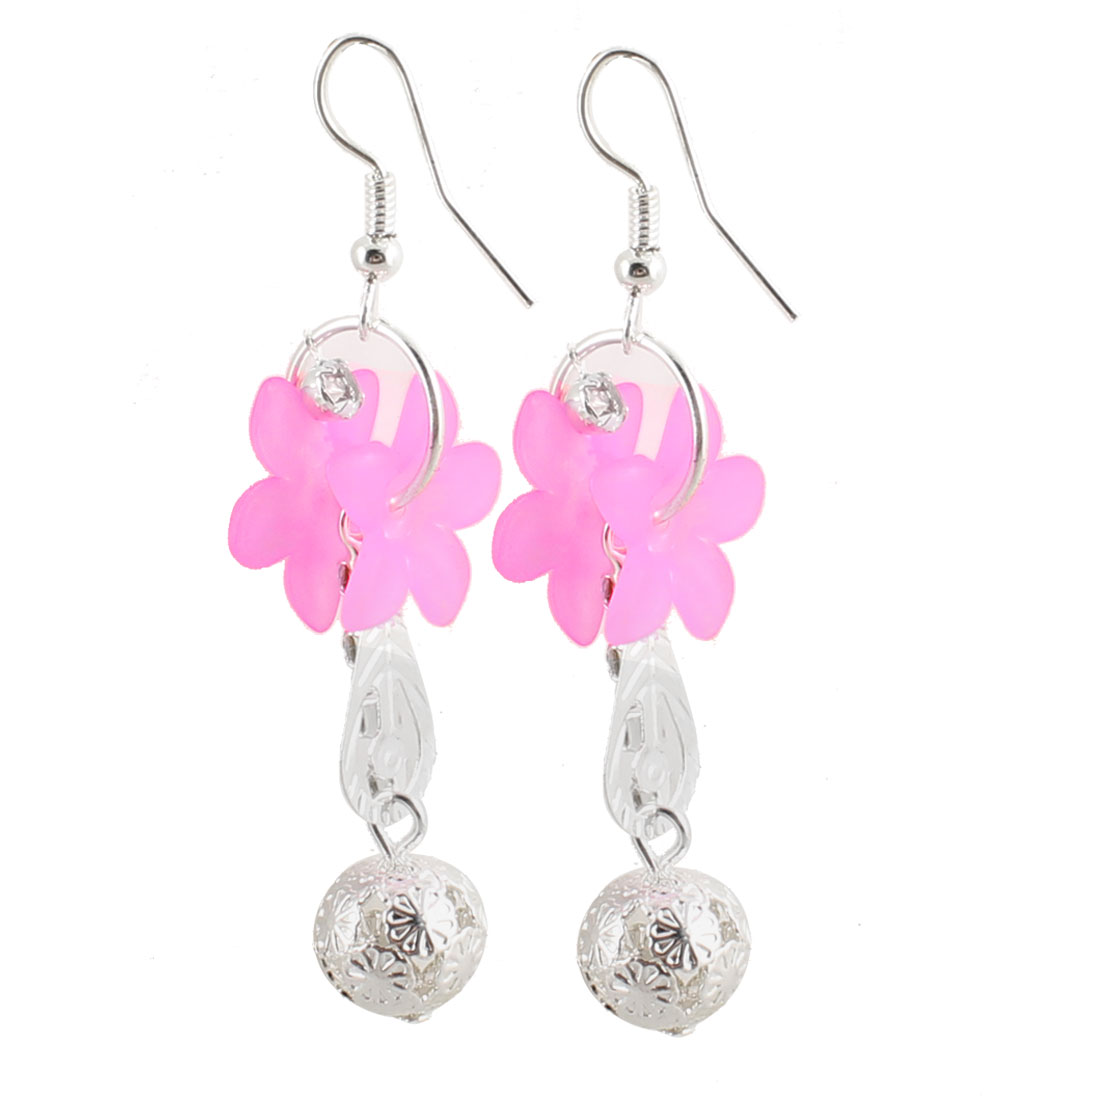 Lady Pair Pink Plastic Flower Metal Ball Pendant Dangle Fish Hook Earrings